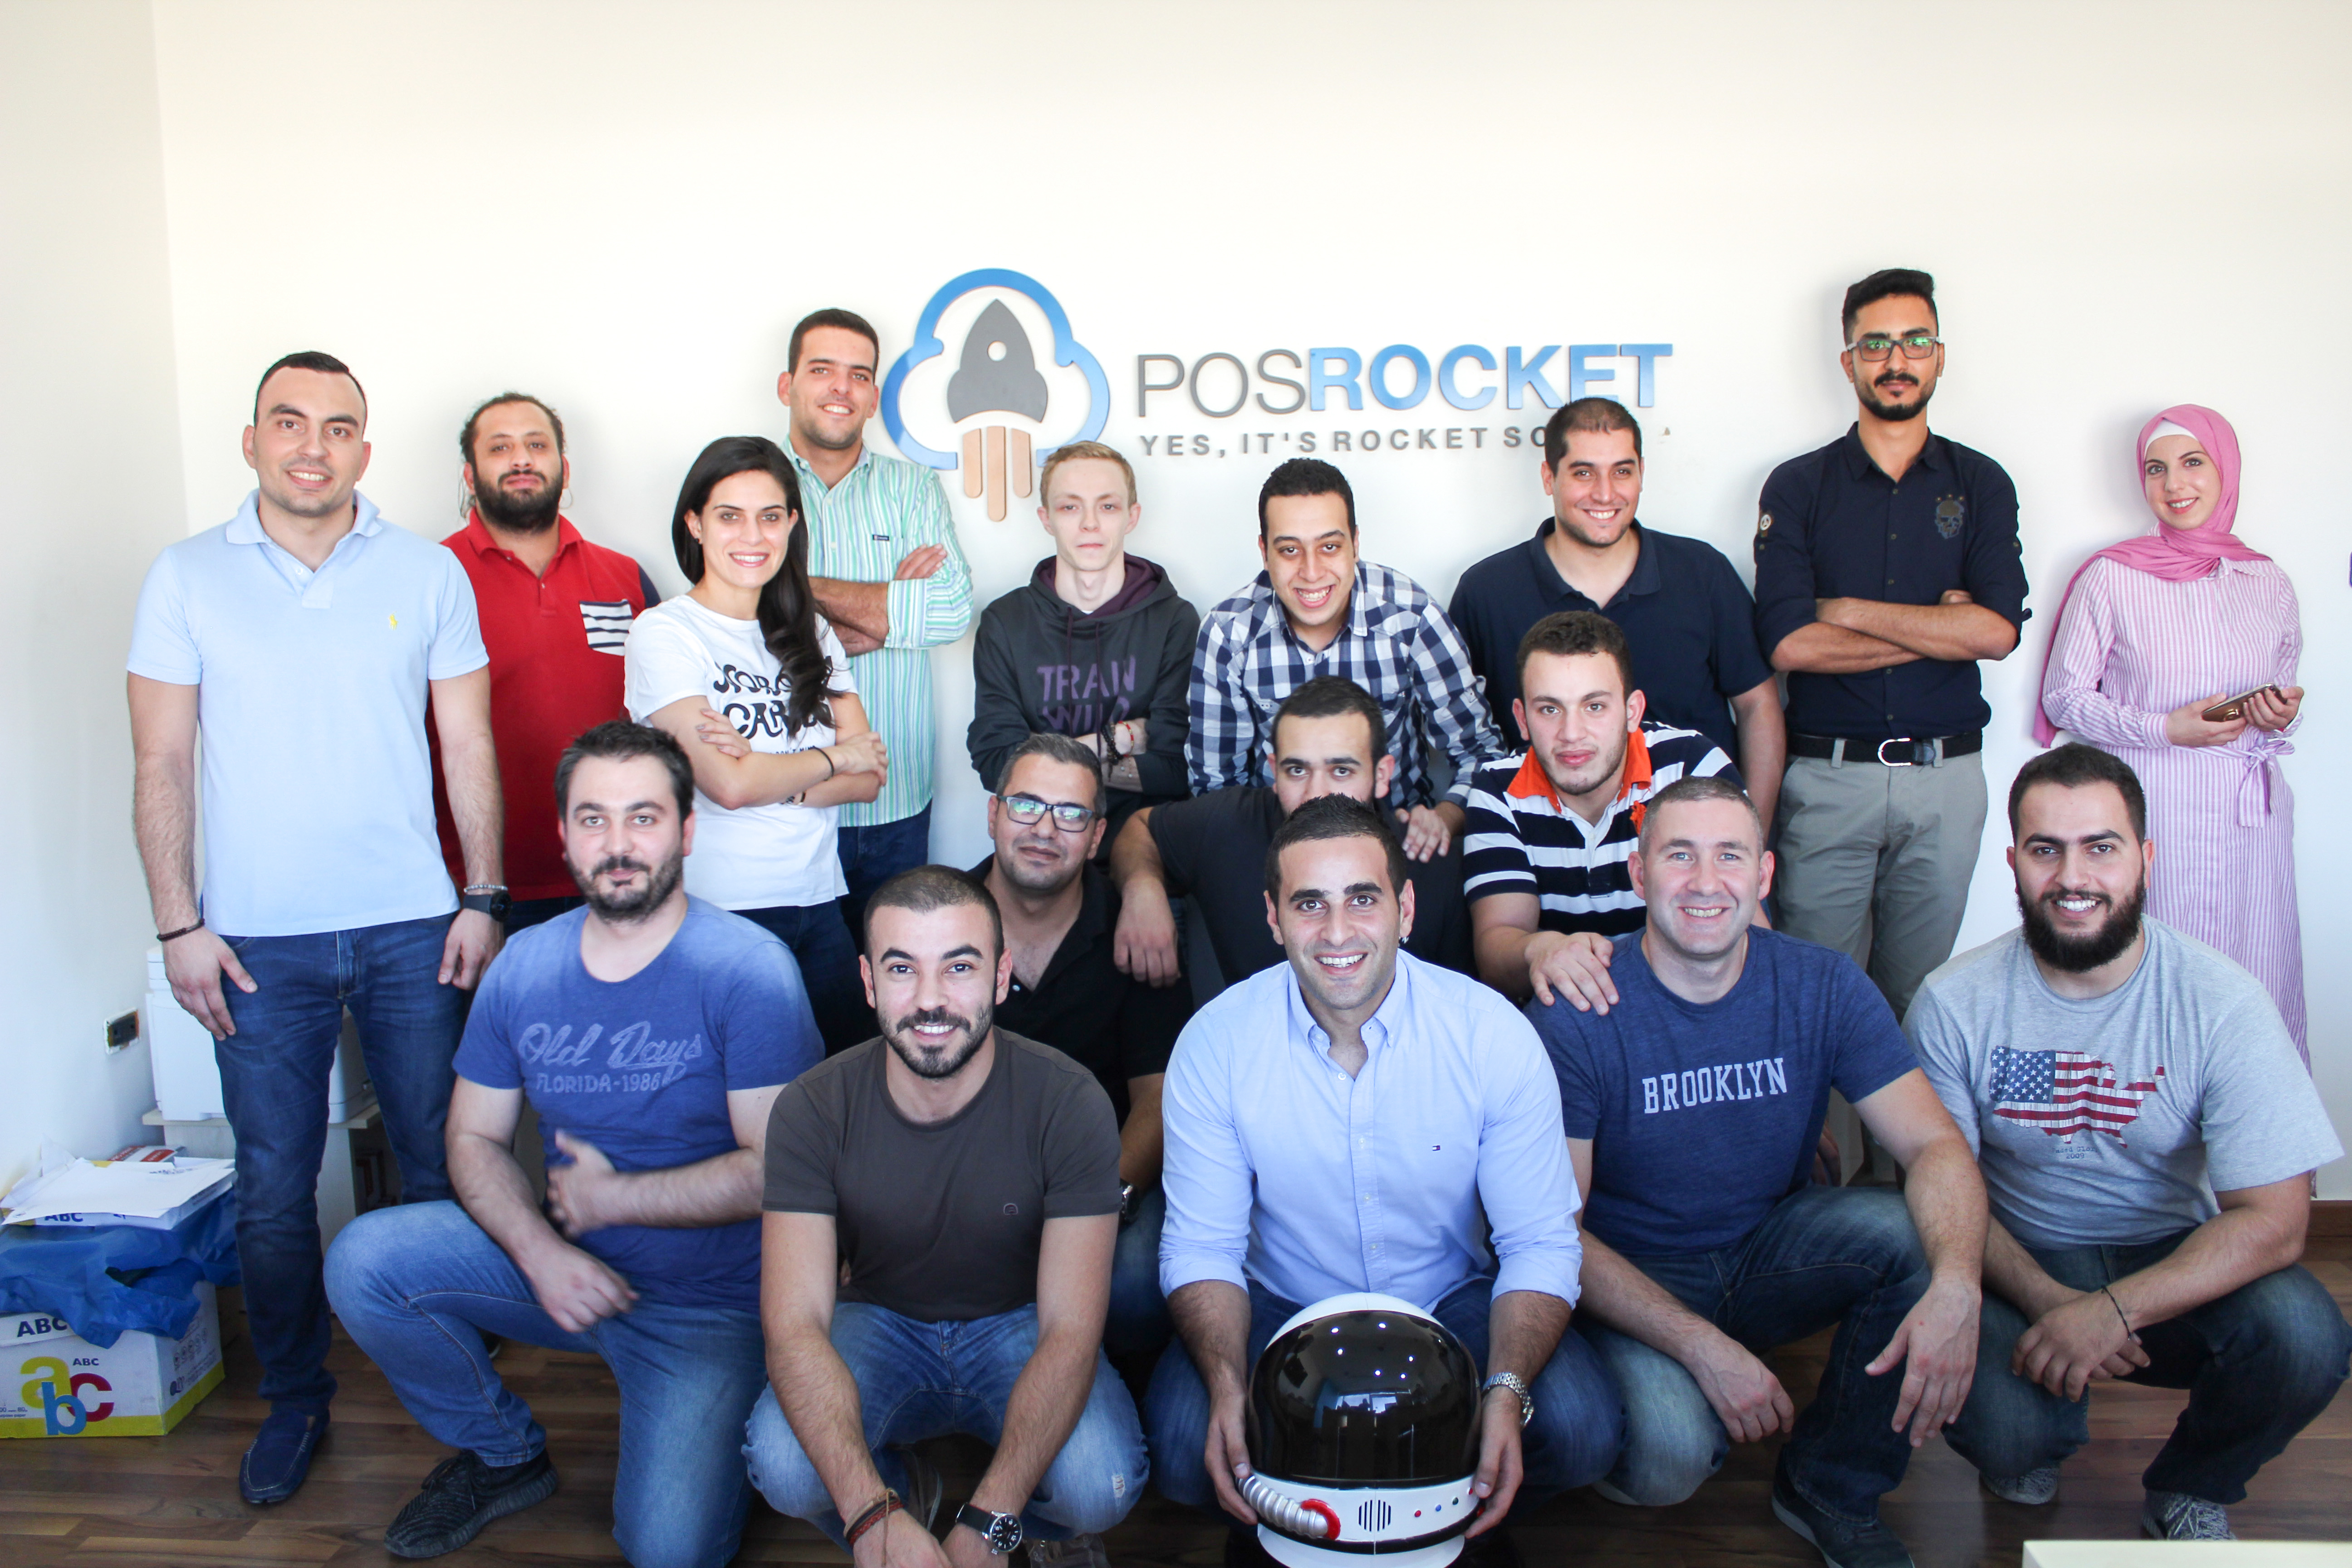 POSRocket team